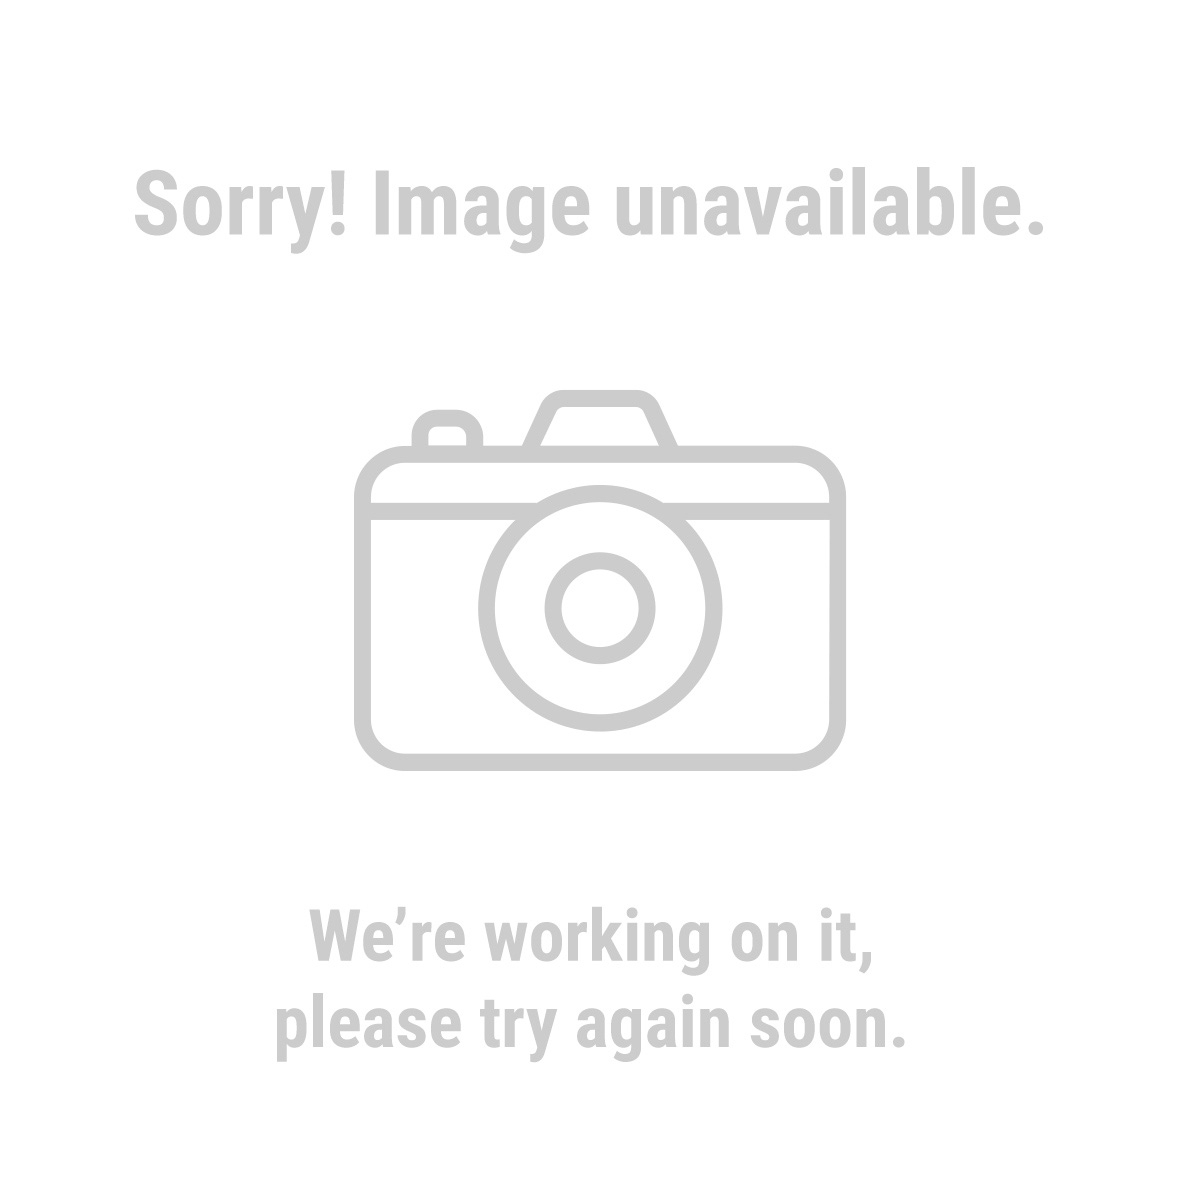 Chicago Electric Welding 94841 Regulator Gauge